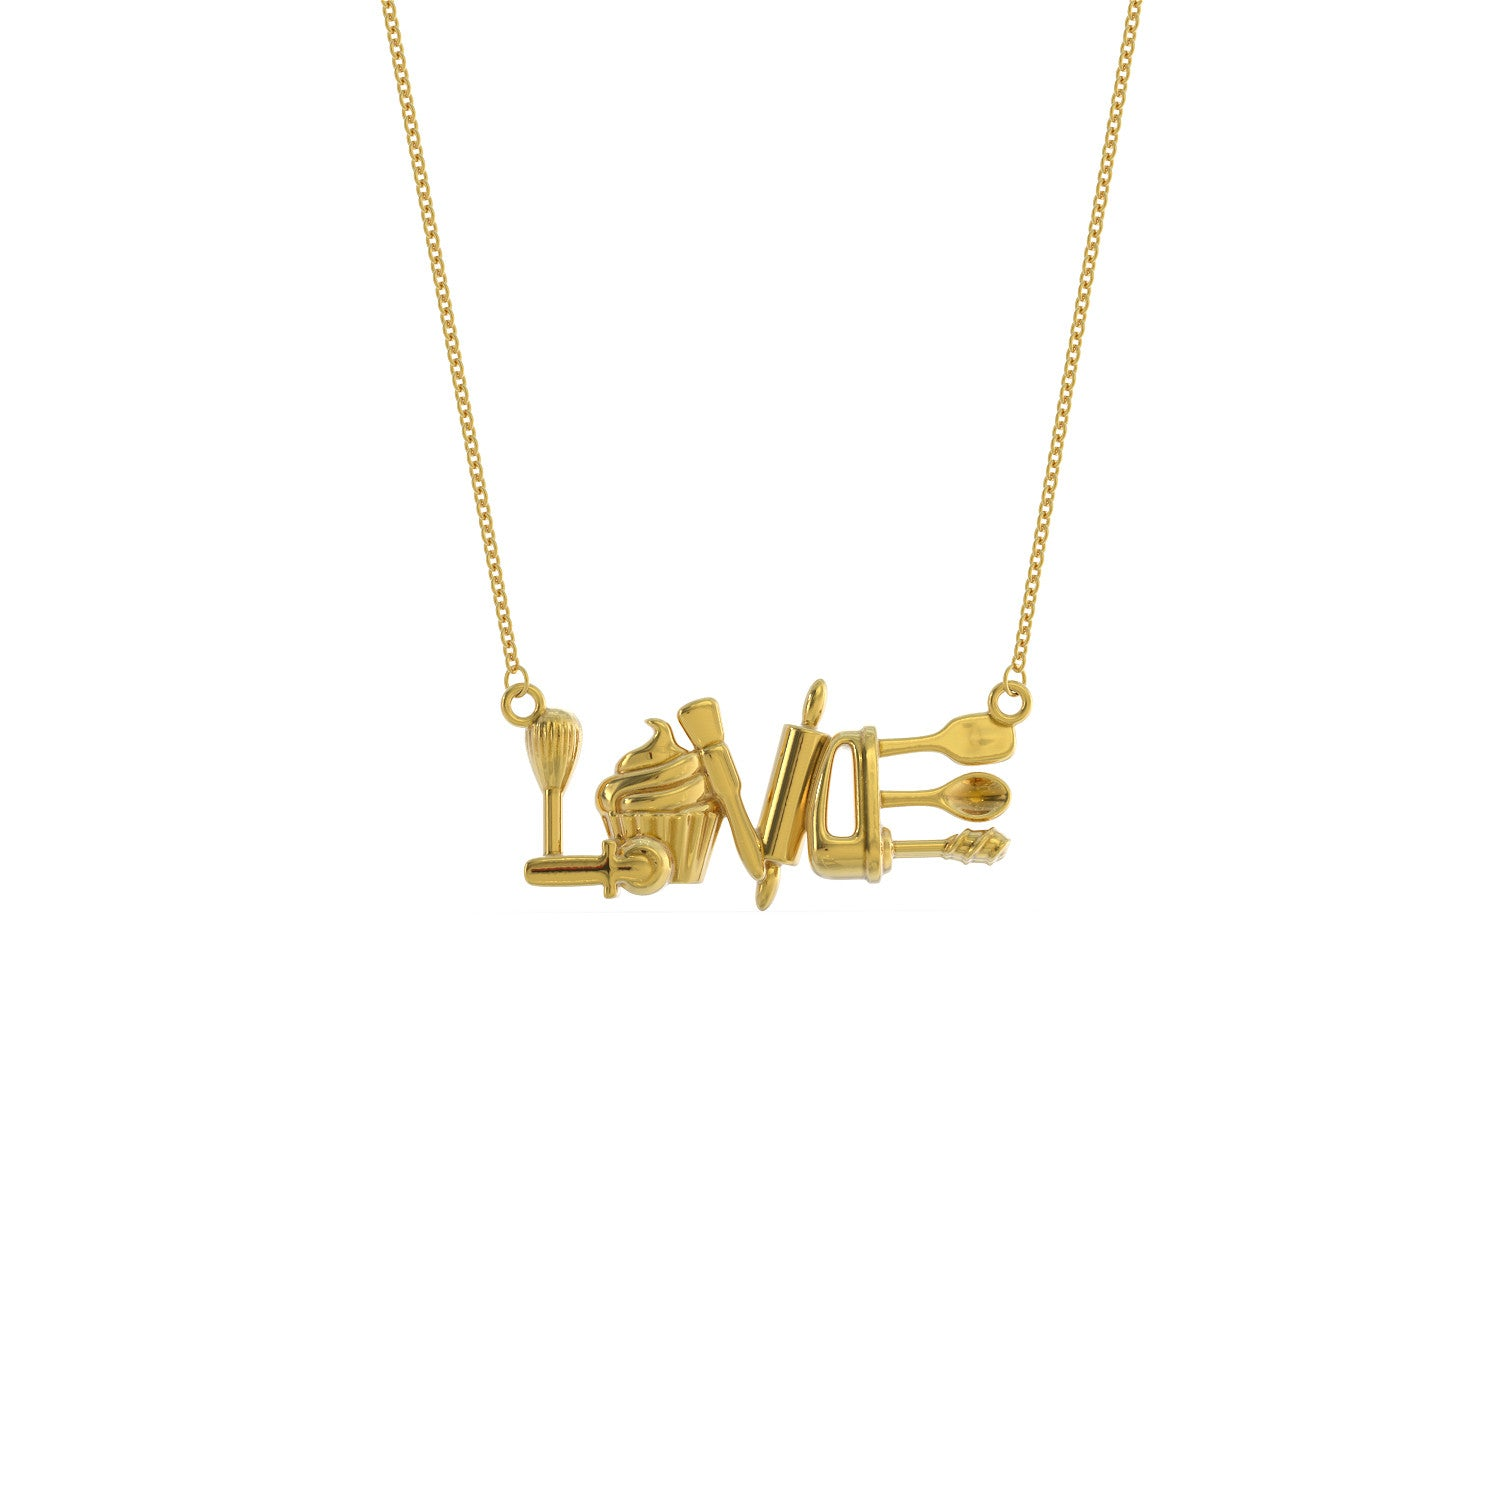 Baking Love Necklace